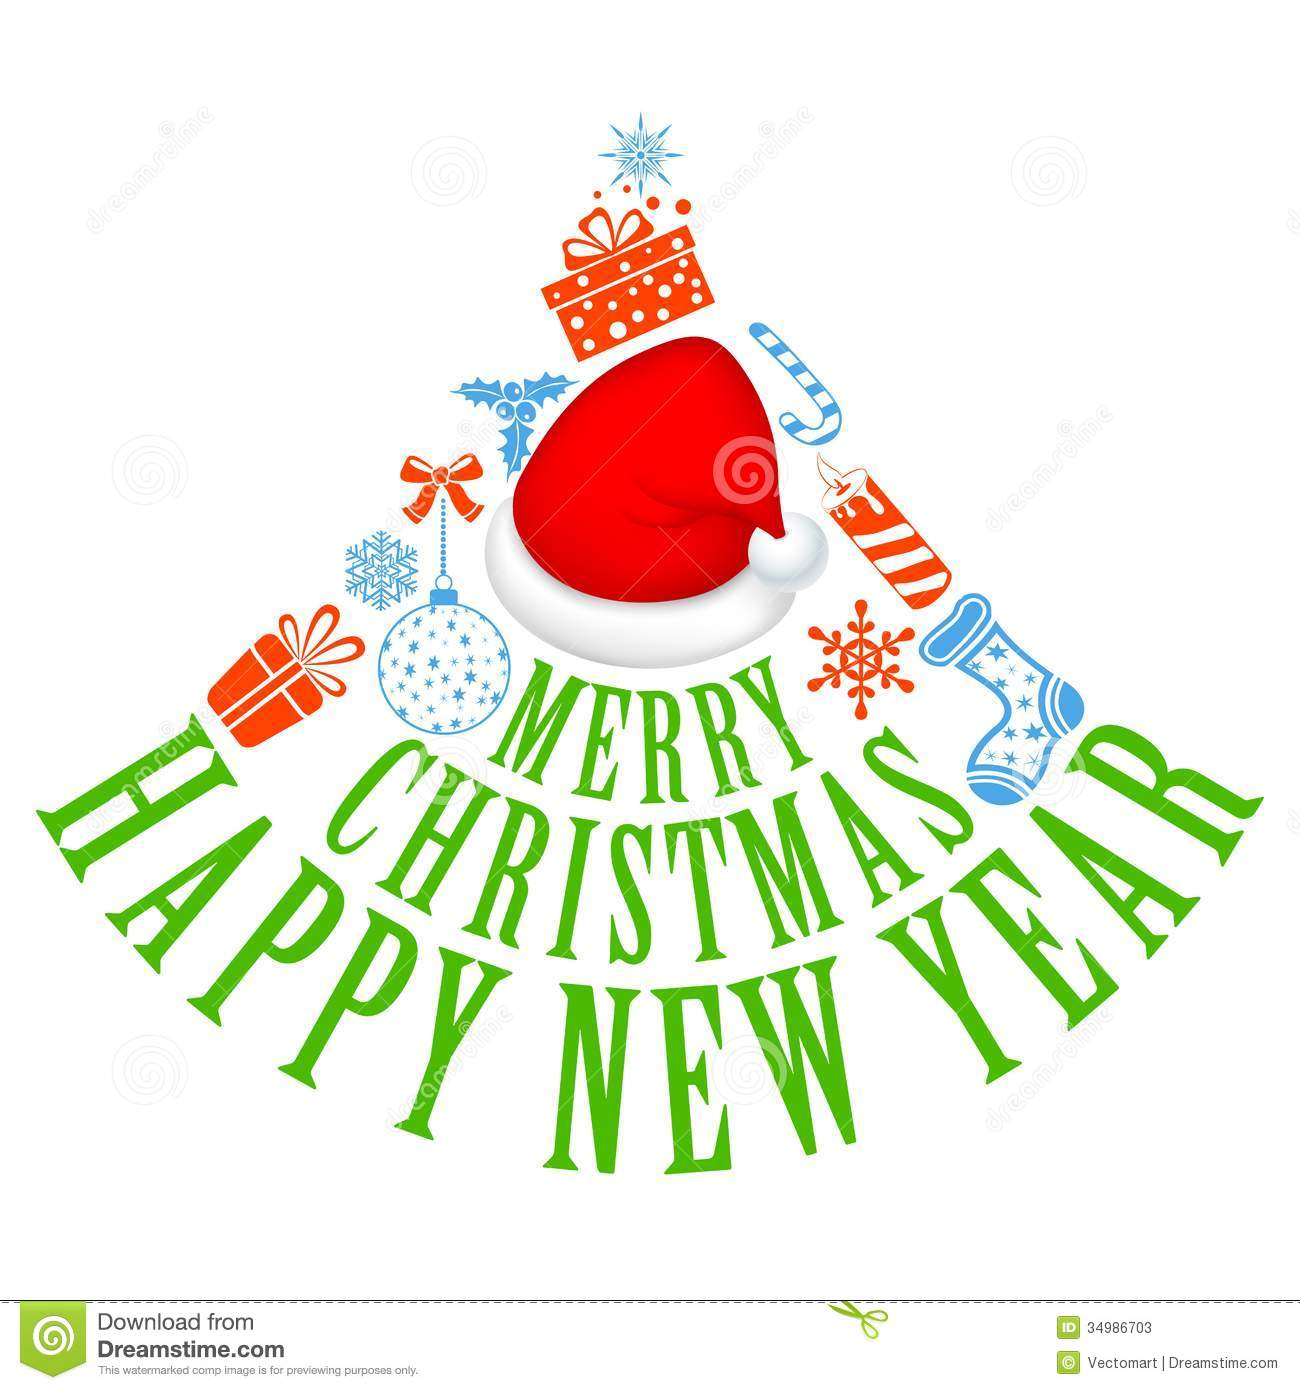 Merry Christmas And Happy New Year Stock Photos - Image: 34986703